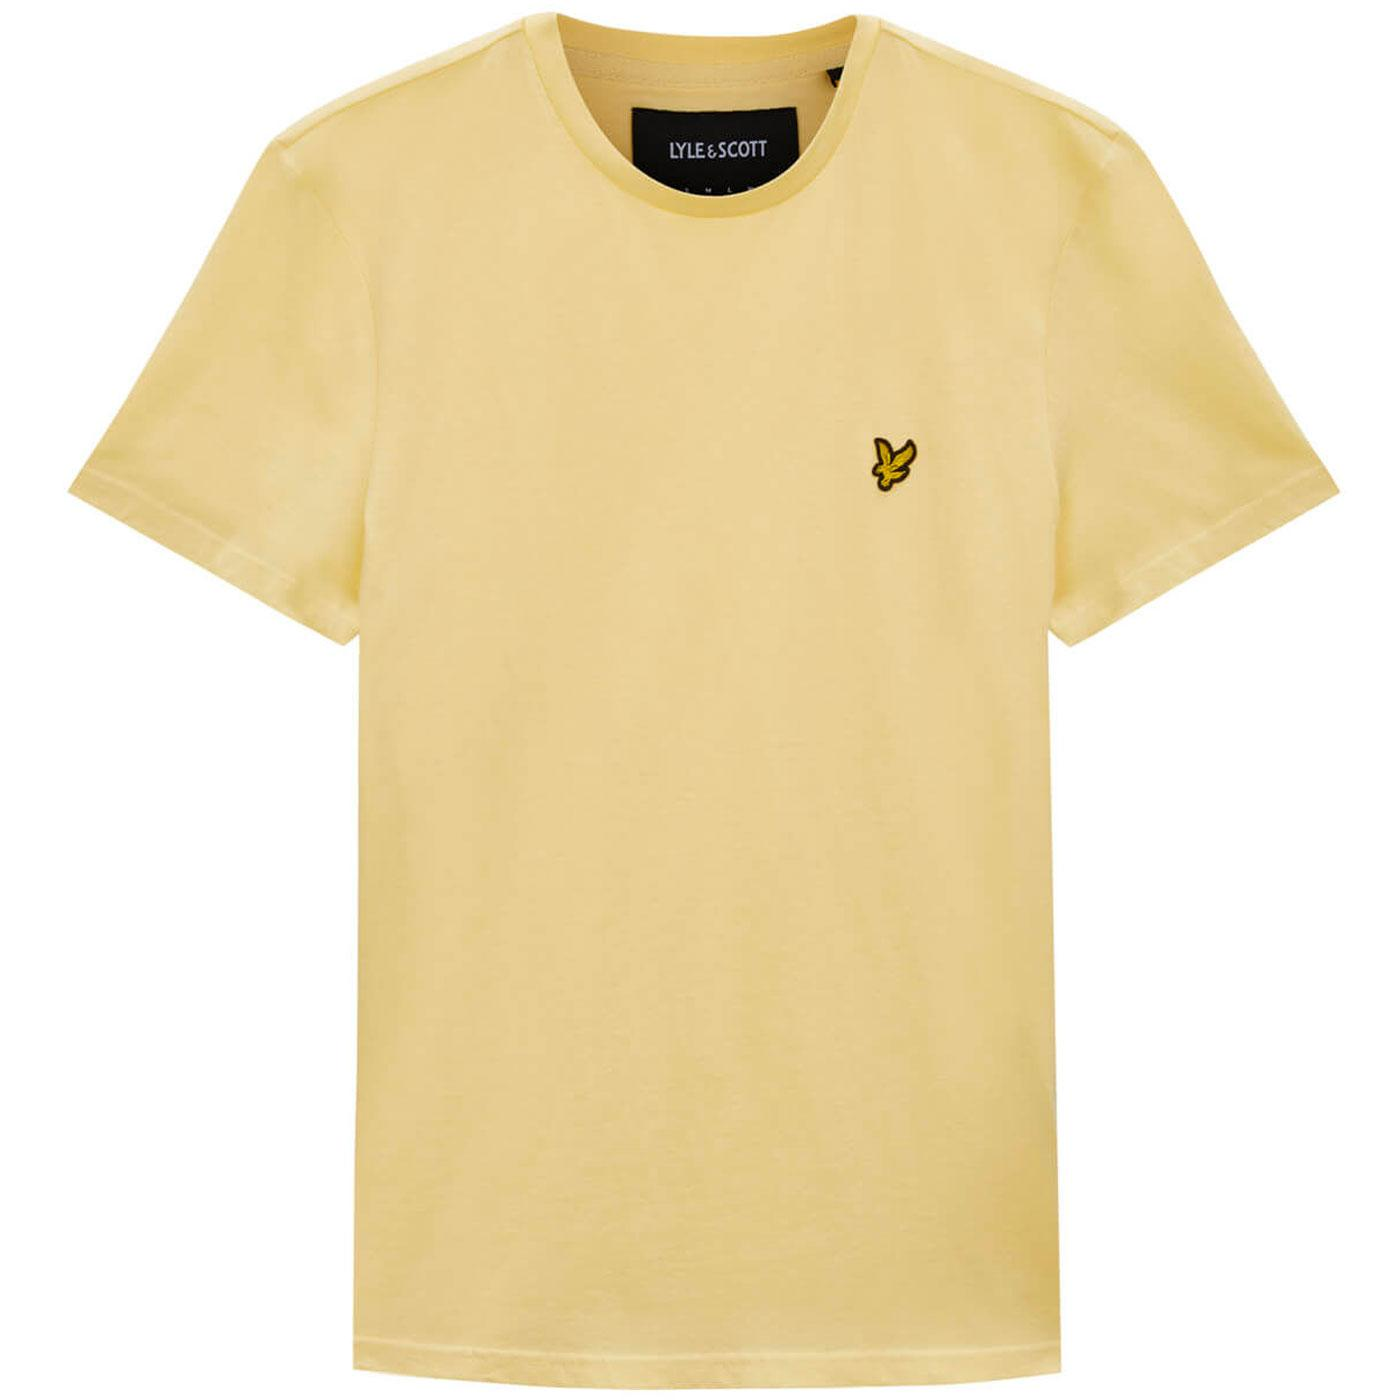 LYLE & SCOTT Men's Retro Crew Tee (Vanilla Cream)